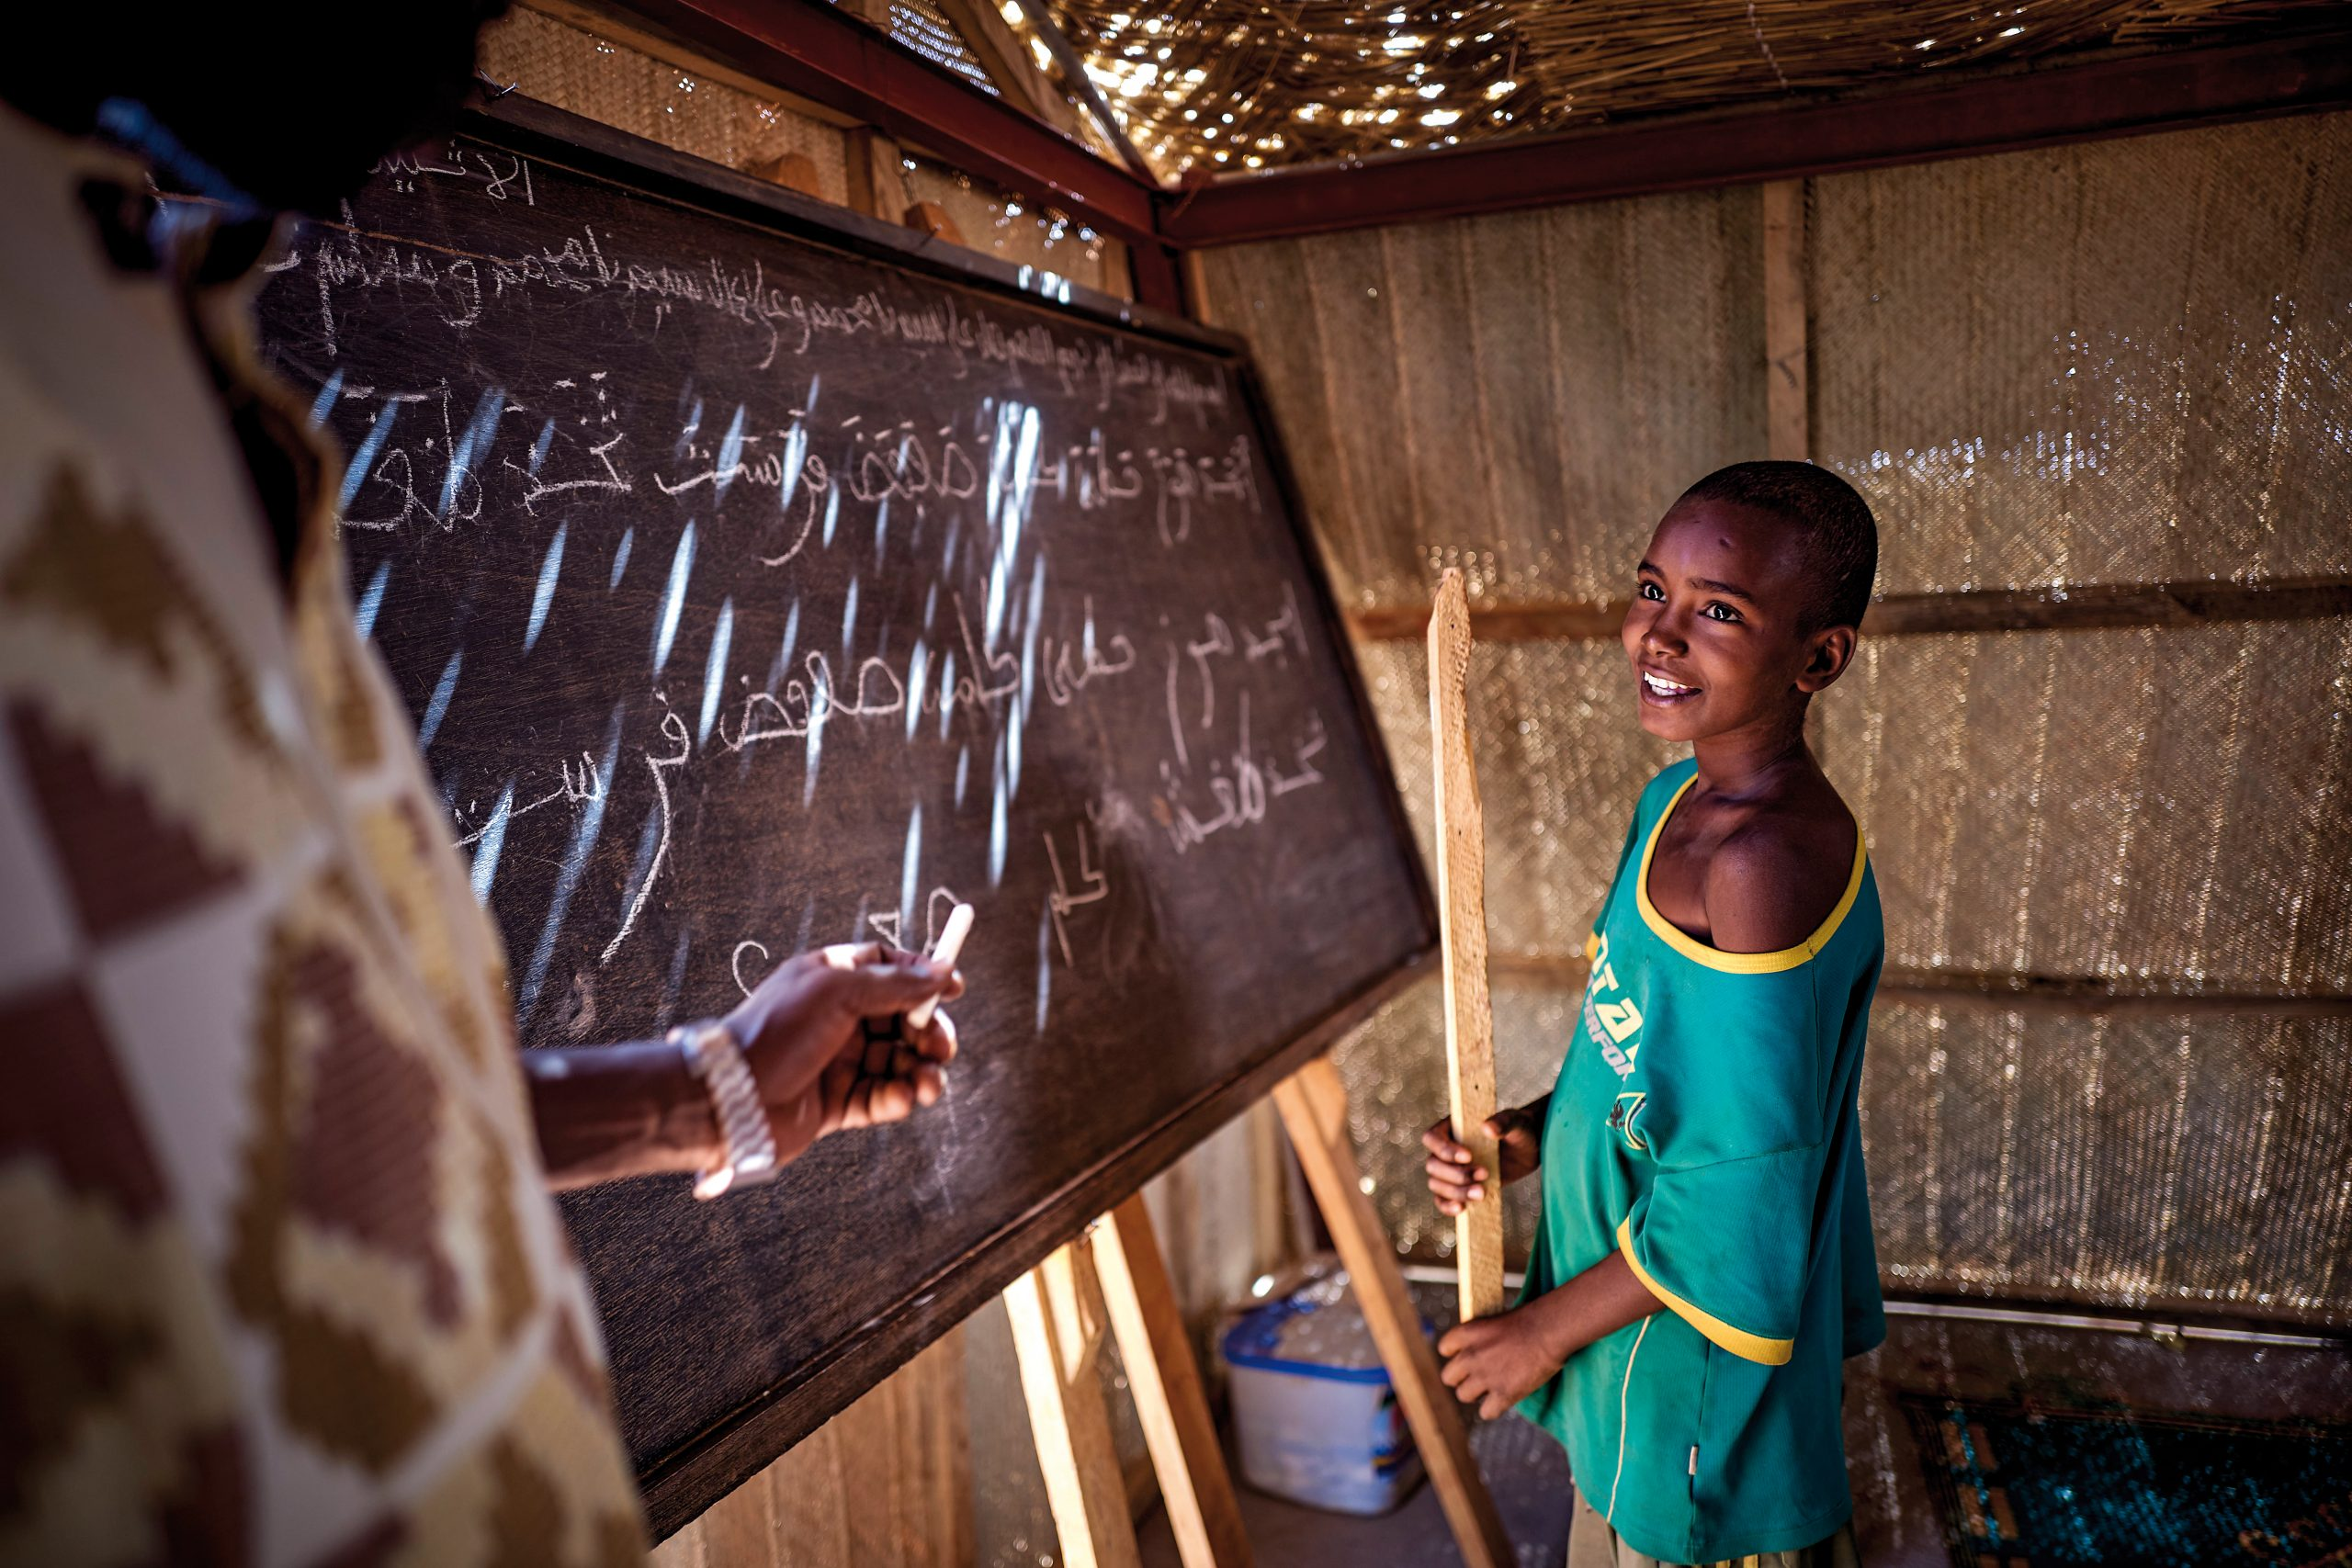 Mali: Education, health and employment needs must be met